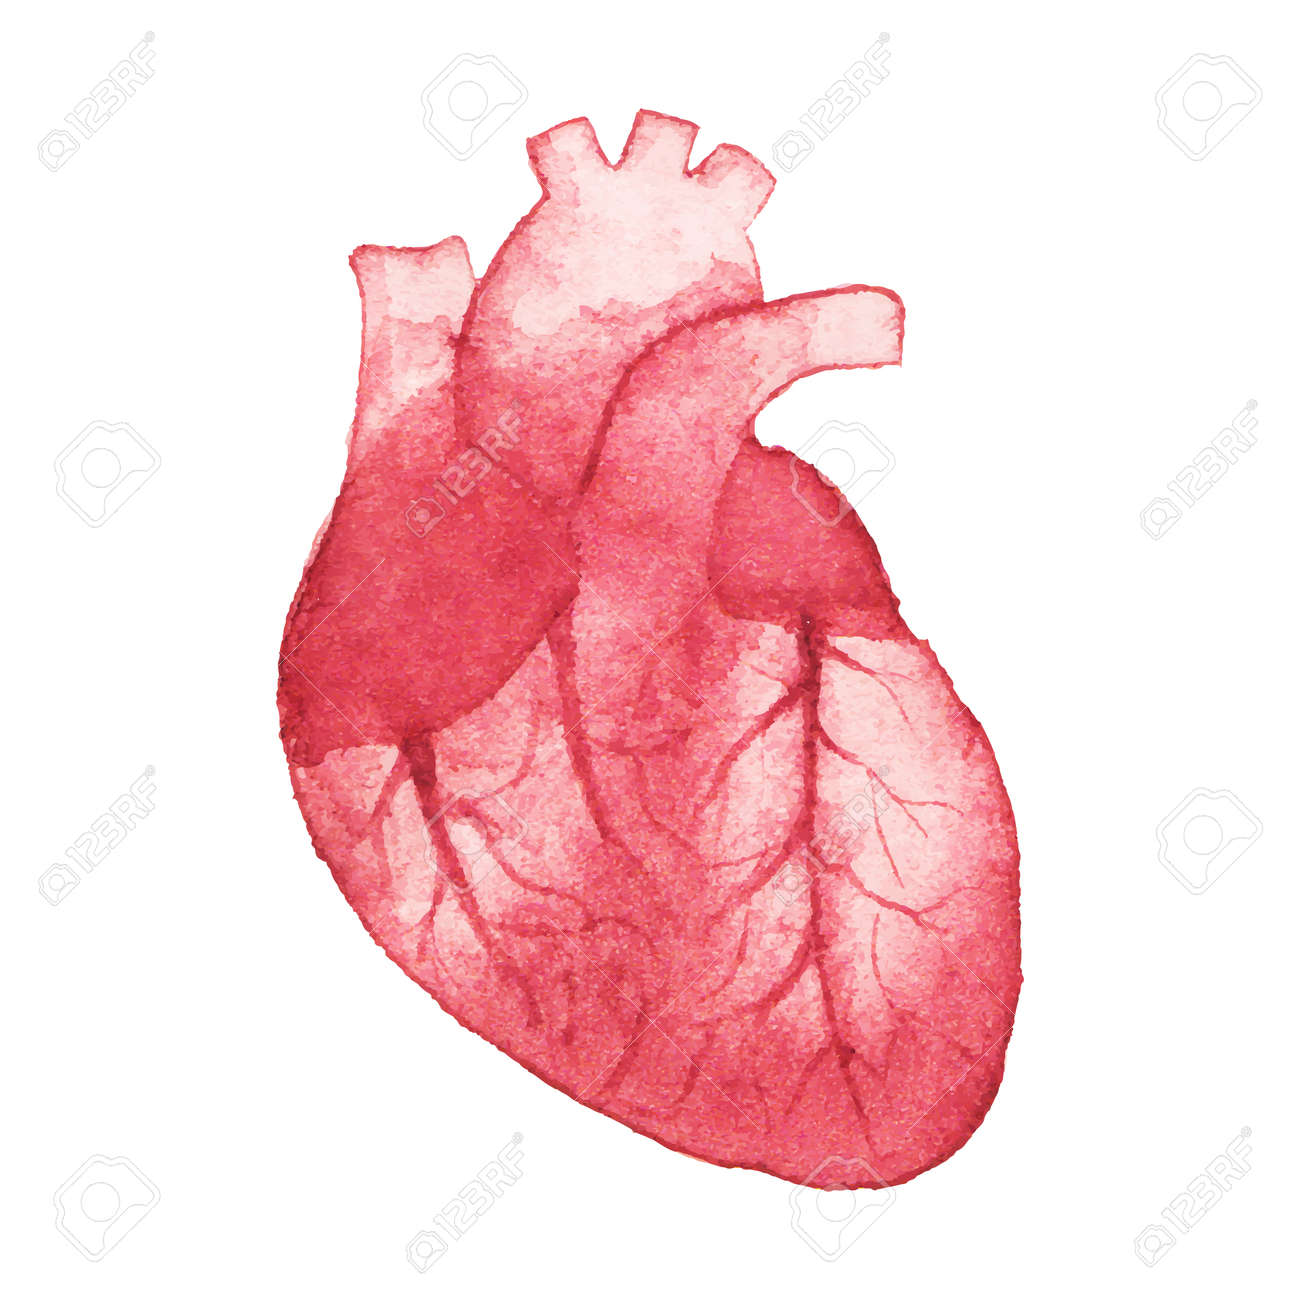 watercolor realistic heart on the white background royalty free, Muscles